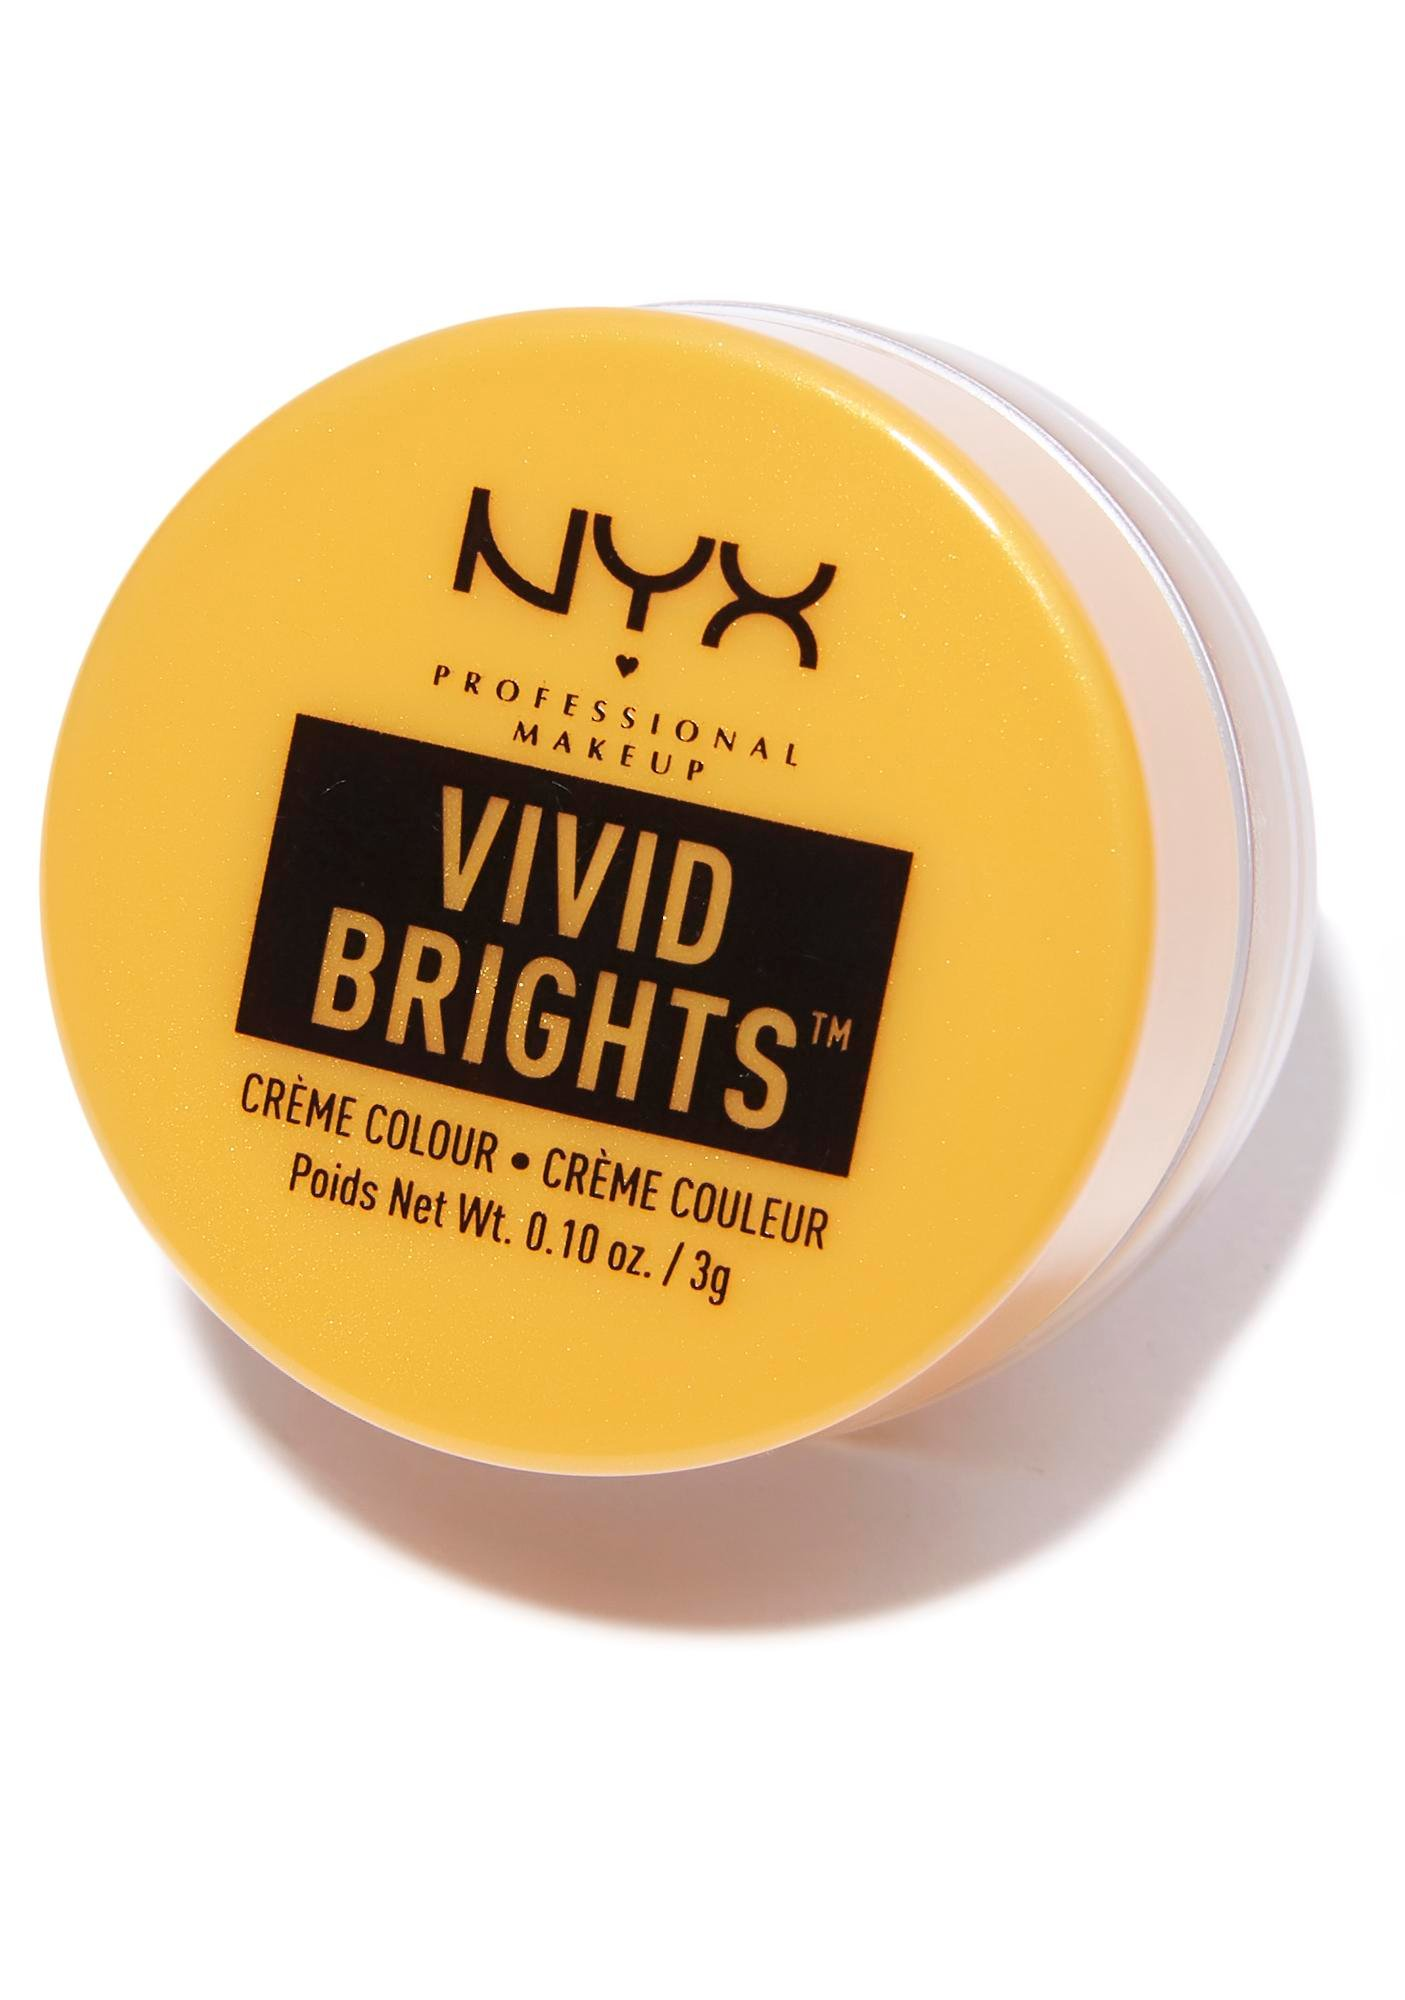 NYX Light Show Vivid Brights Creme Colour